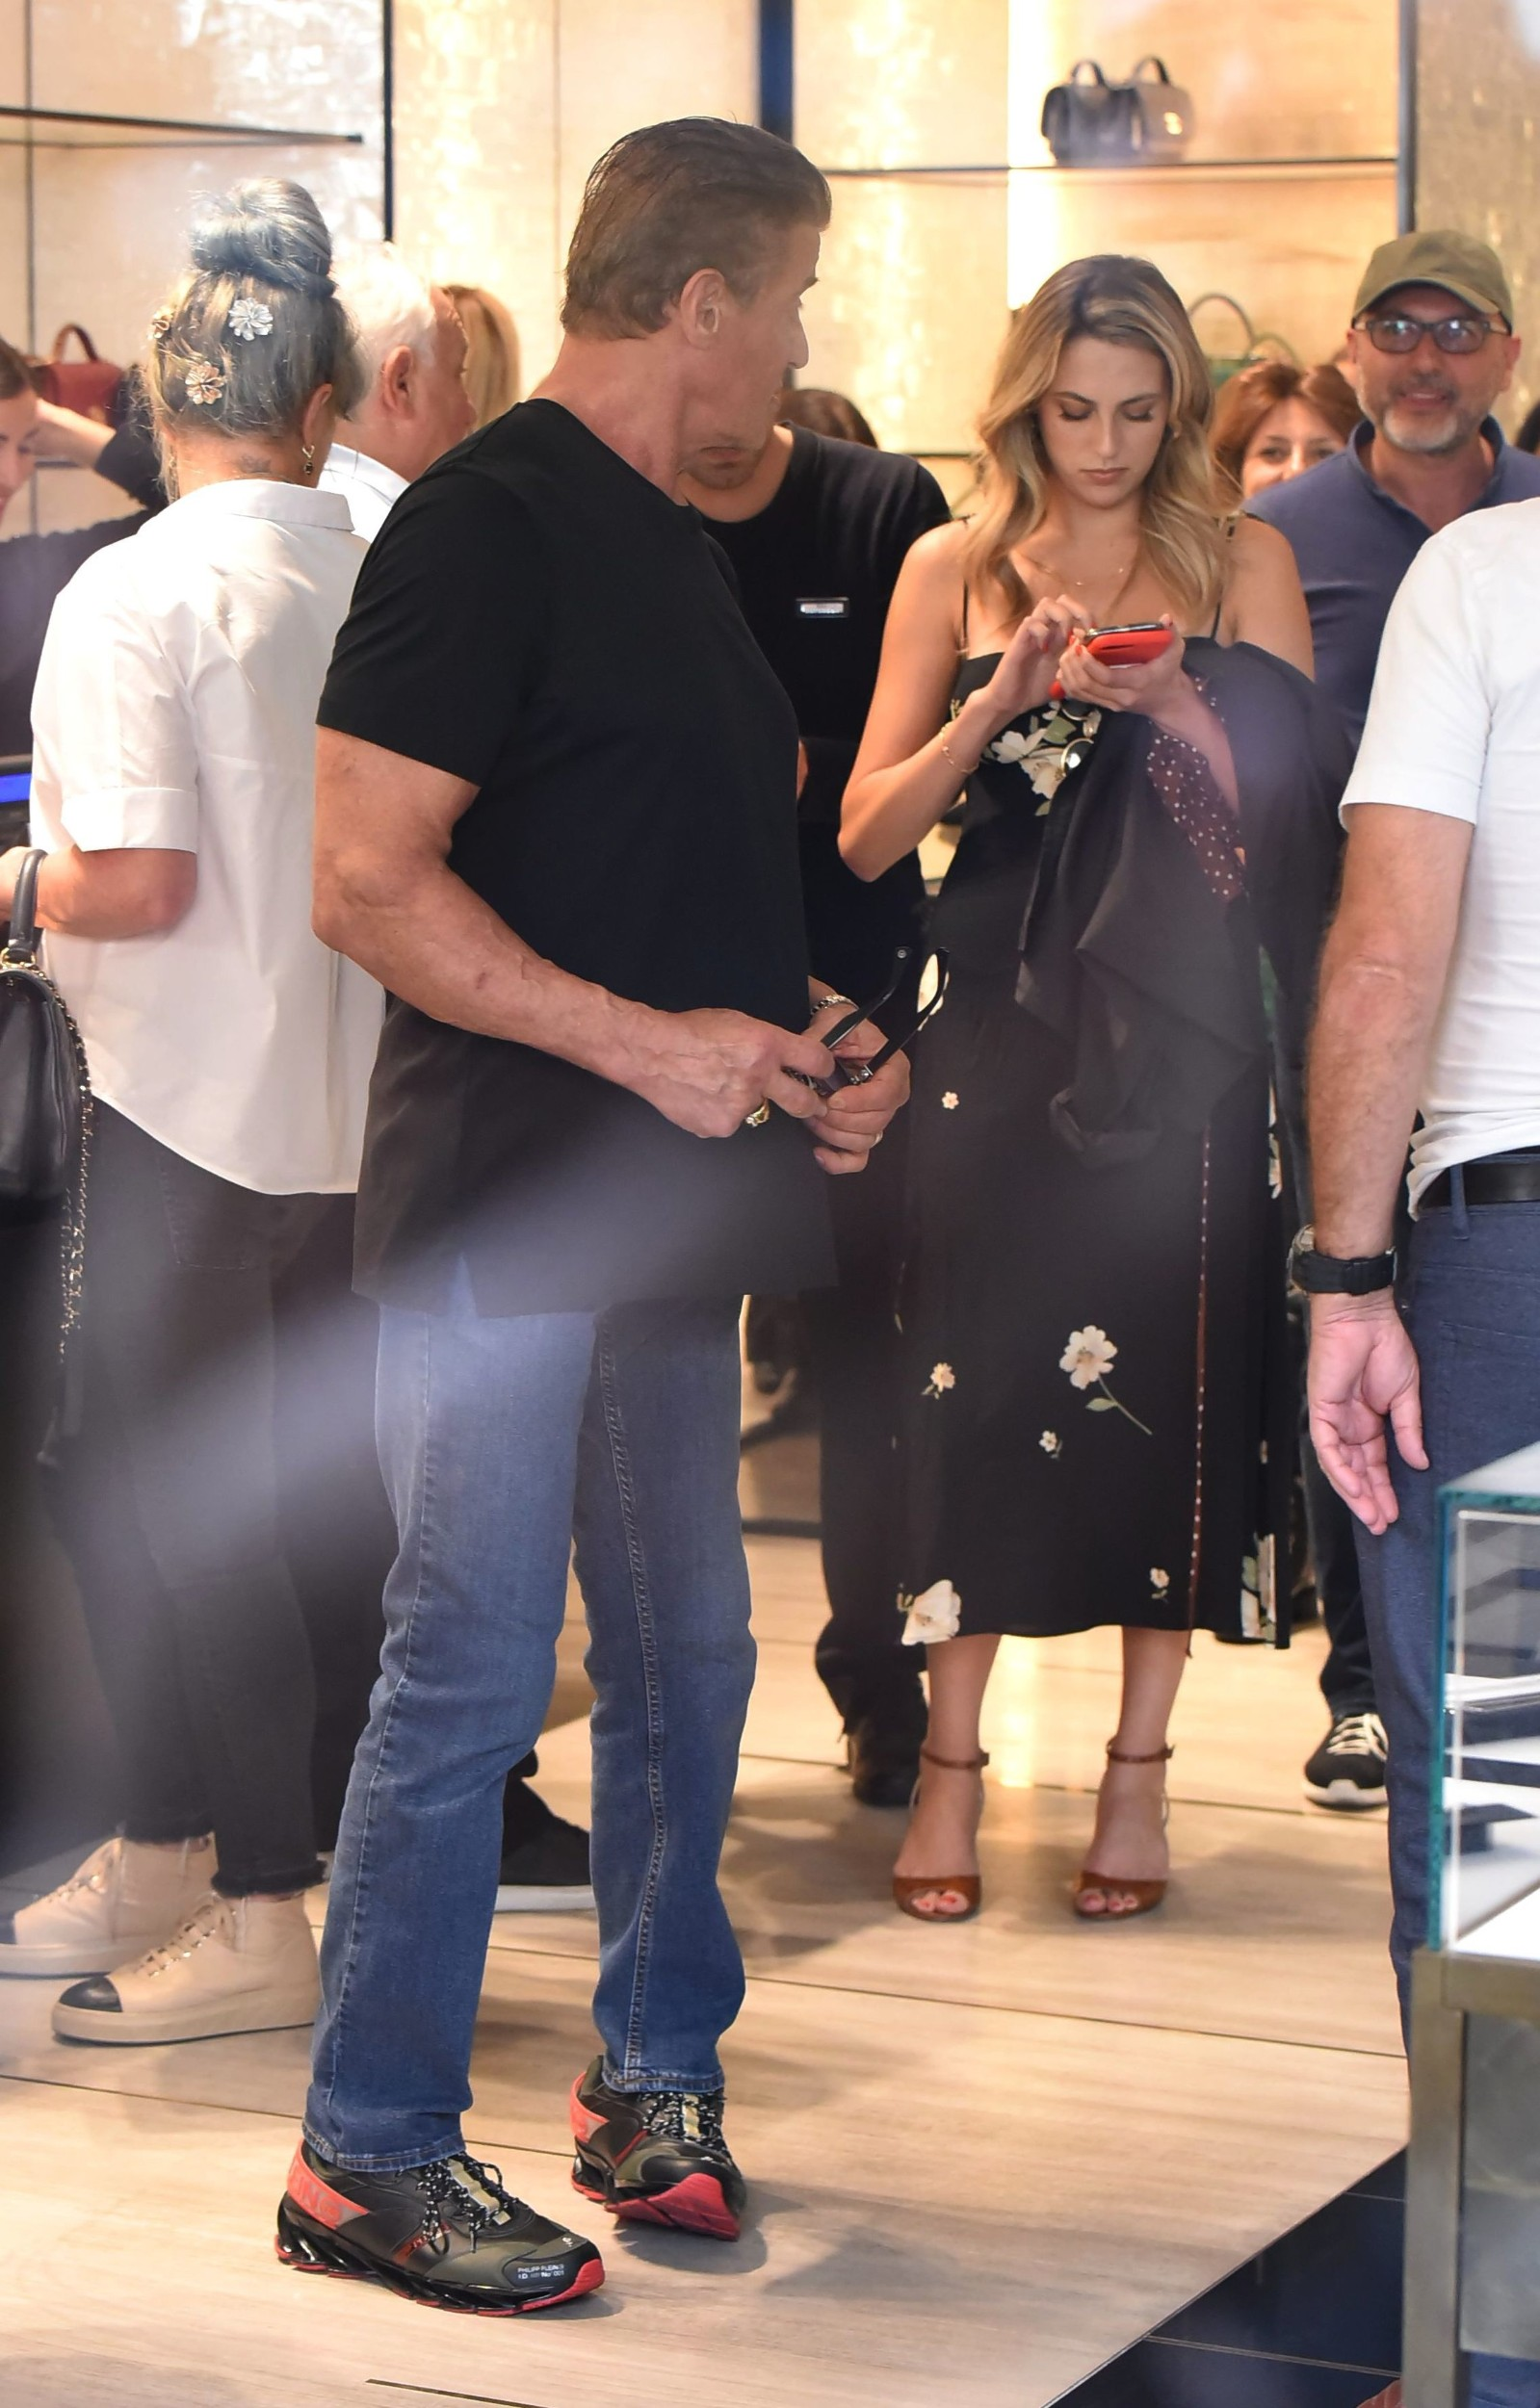 Sylvester Stallone and Sophia Rose Stallone Sylvester Stallone out and about, Rome, Italy - 03 Sep 2019, Image: 469015769, License: Rights-managed, Restrictions: , Model Release: no, Credit line: Profimedia, Shutterstock Editorial